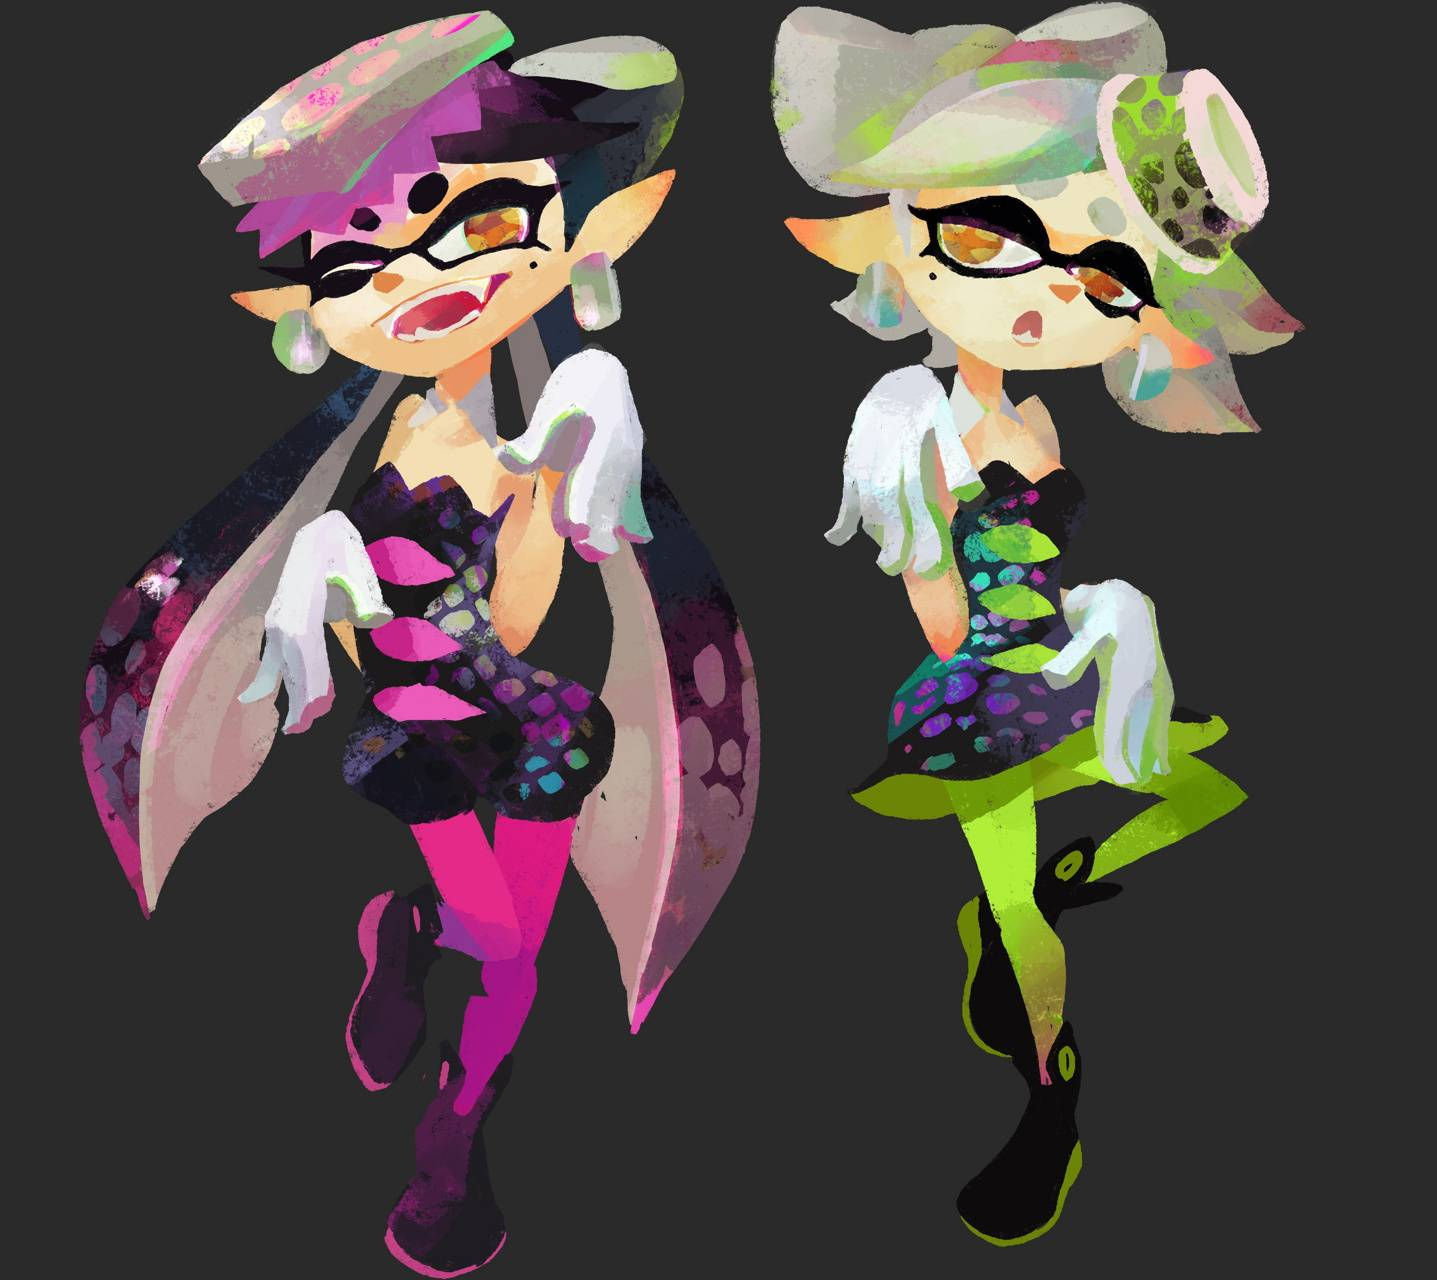 Callie And Marie Wallpaper By Theradgasm 41 Free On Zedge